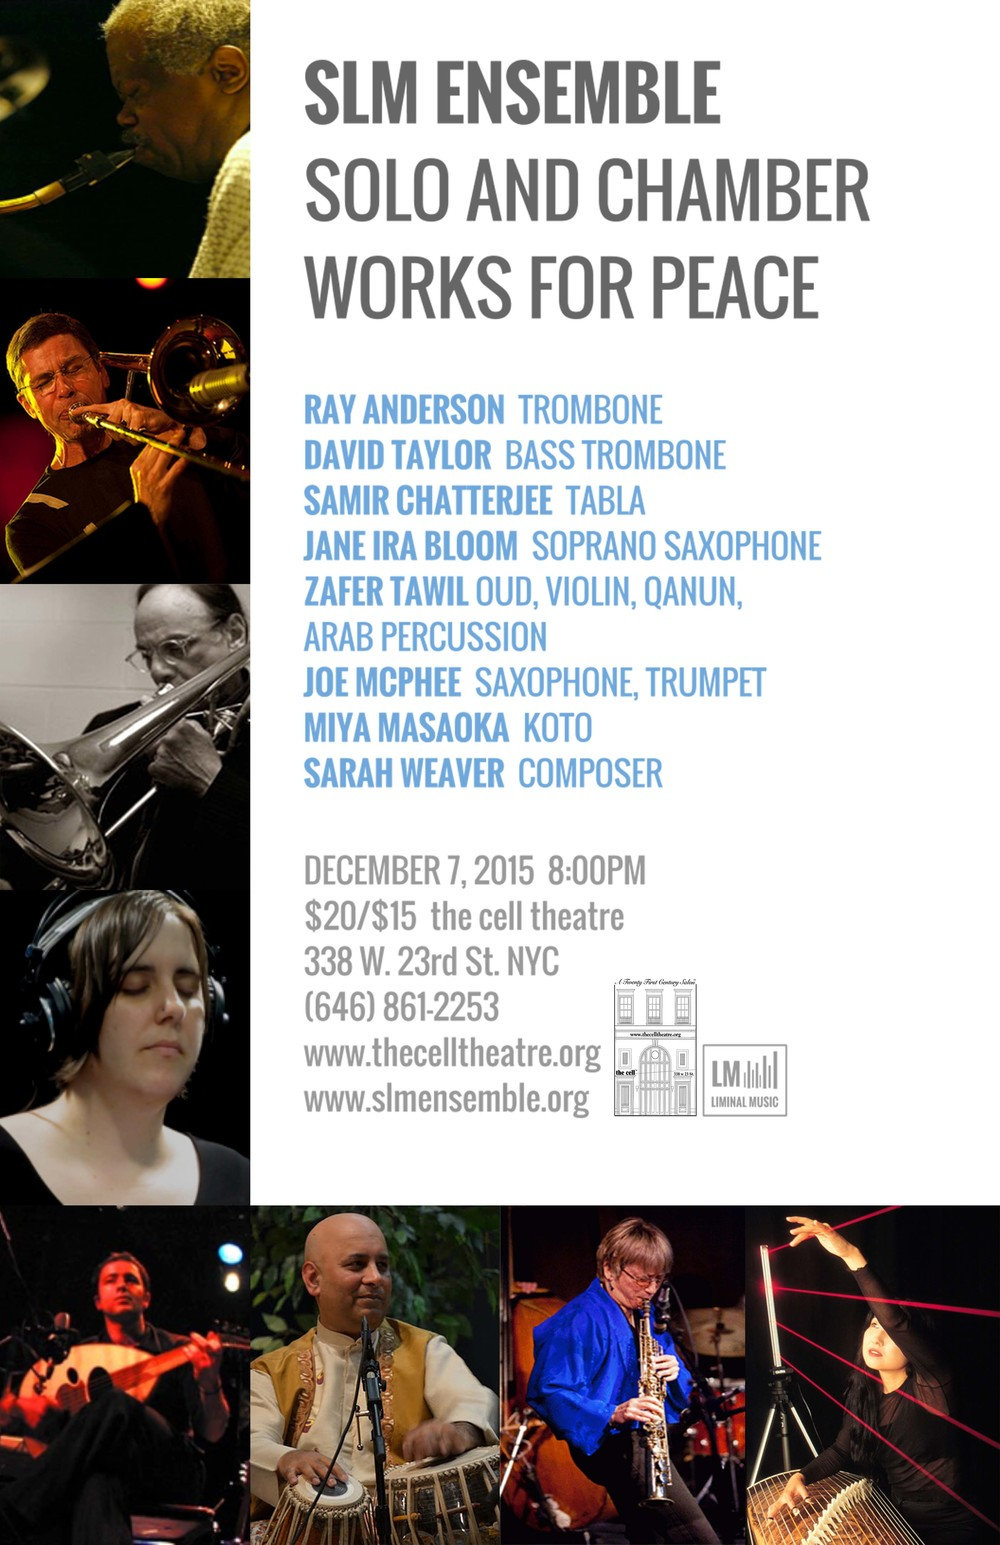 "SLM Ensemble: Solo and Chamber Works for Peace. In remembrance of Pearl Harbor and for creation of peace in our time, musicians from the SLM Ensemble perform solo and chamber music compositions and improvisations for peace. Musicians: Ray Anderson, trombone, Jane Ira Bloom, soprano saxophone, Samir Chatterjee, tabla, Miya Masaoka, koto, Joe McPhee, saxophone, trumpet, Zafer Tawil, oud, violin, qanun, Arab percussion, Dave Taylor, bass trombone, Sarah Weaver, composer The SLM Ensemble is a New York City based experimental music large ensemble created by co-artistic directors bassist/composer Mark Dresser and conductor/composer Sarah Weaver. The SLM Ensemble performs and records works for large ensemble, solo and chamber works, film/multimedia, and the telematic medium via the internet by Dresser, Weaver, and at times collaborating composers. The modular roster is composed of diverse pioneering musicians of our time. The name SLM is an acronym ""Source Liminal Music"" as well as a tri-consonantal root of words from several languages that mean ""peace"".  www.slmensemble.org"